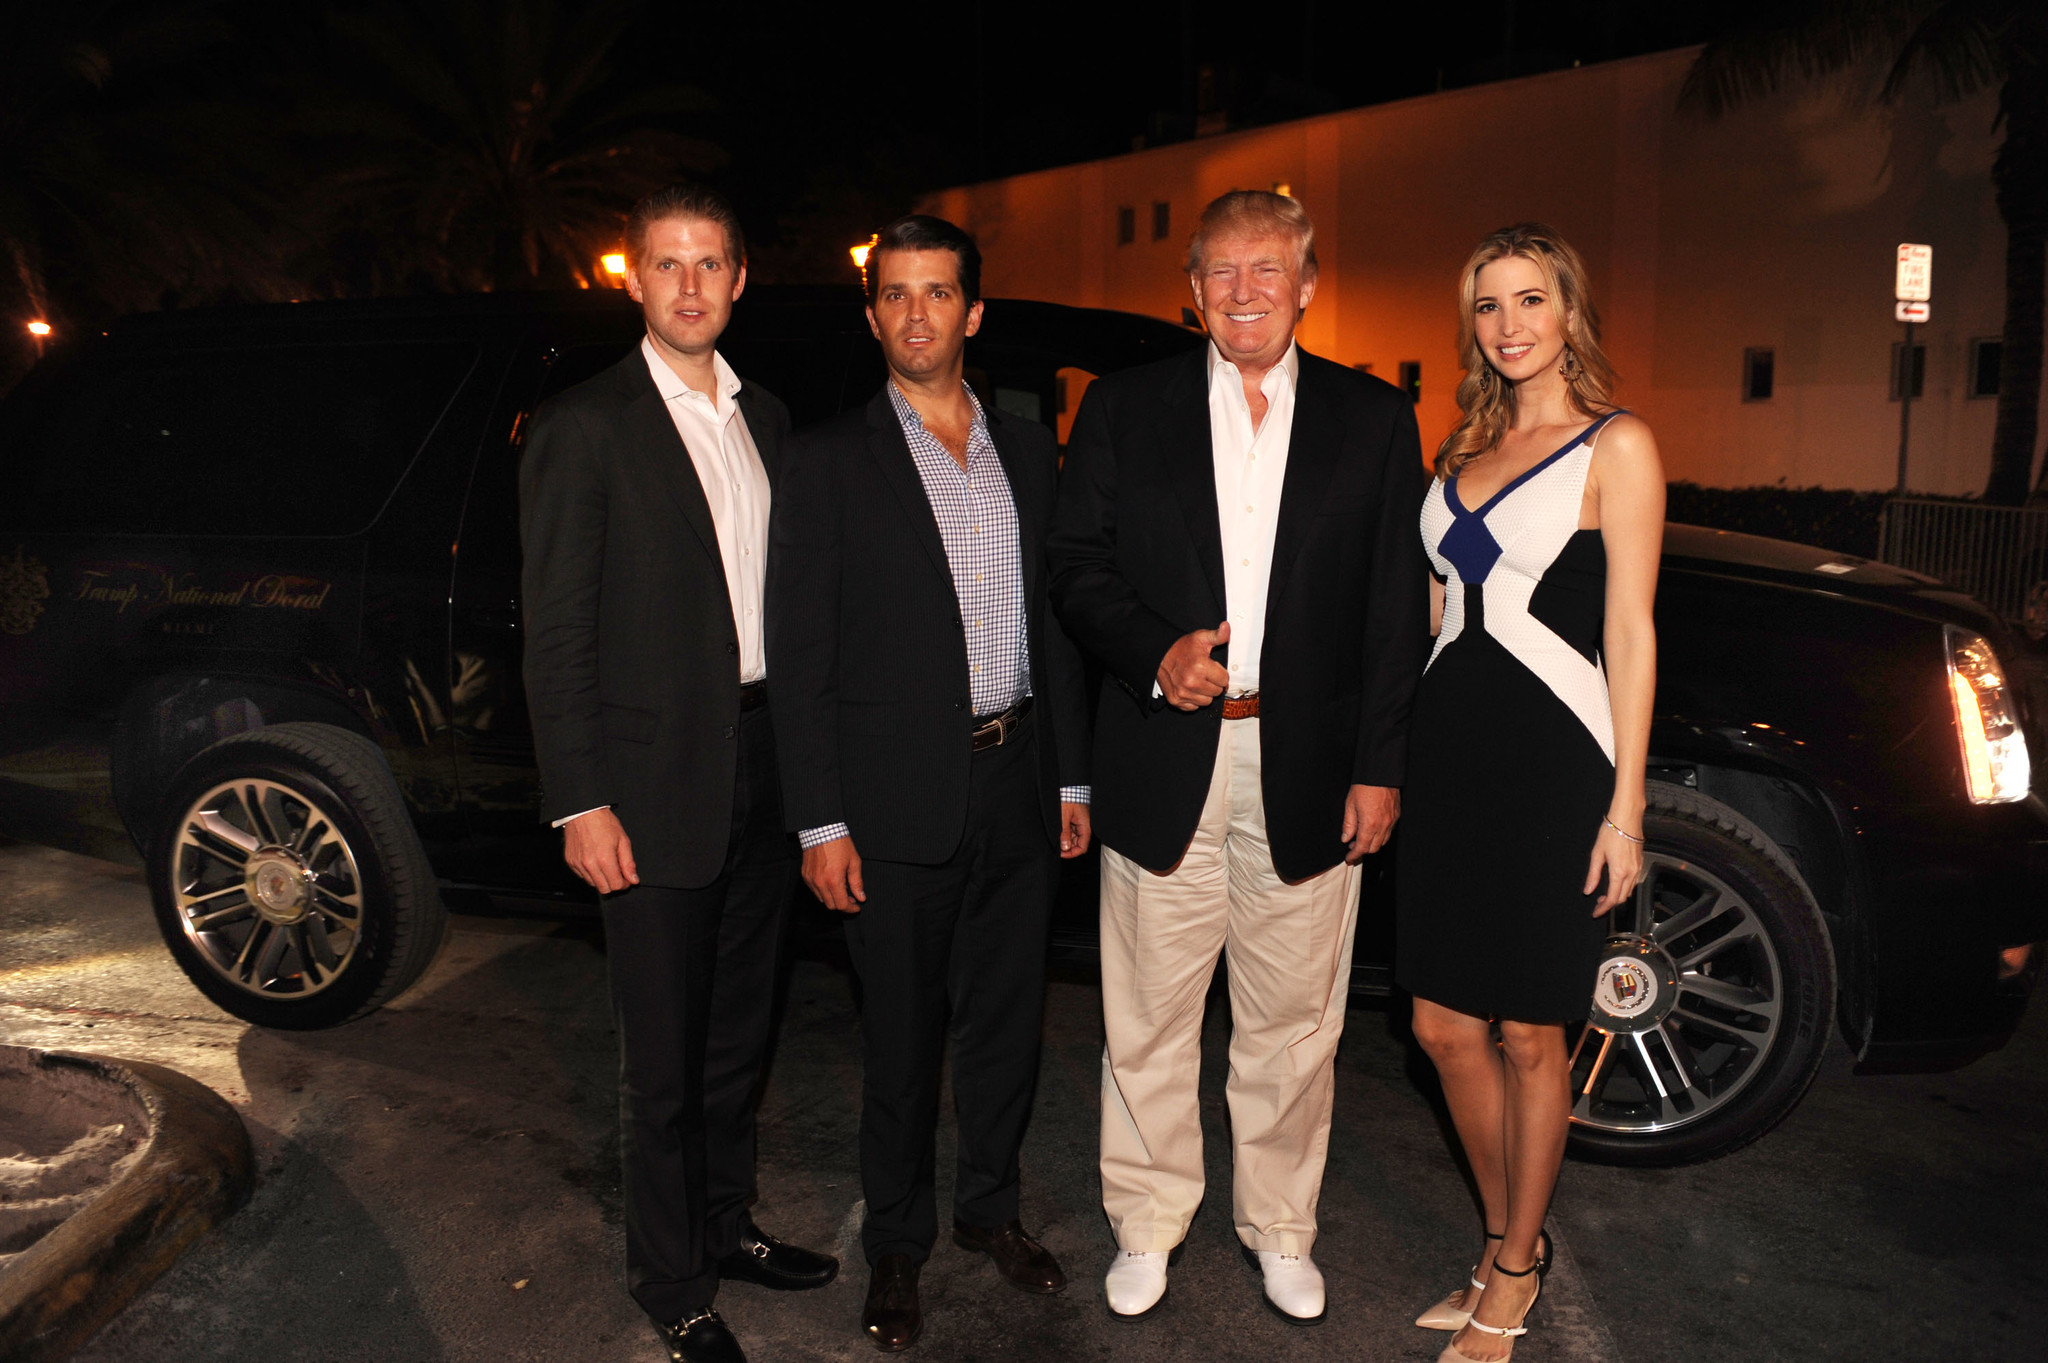 Celeb-spotting around South Florida - Eric Trump, Donald Jr. Trump, Donald Trump and Ivanka Trump